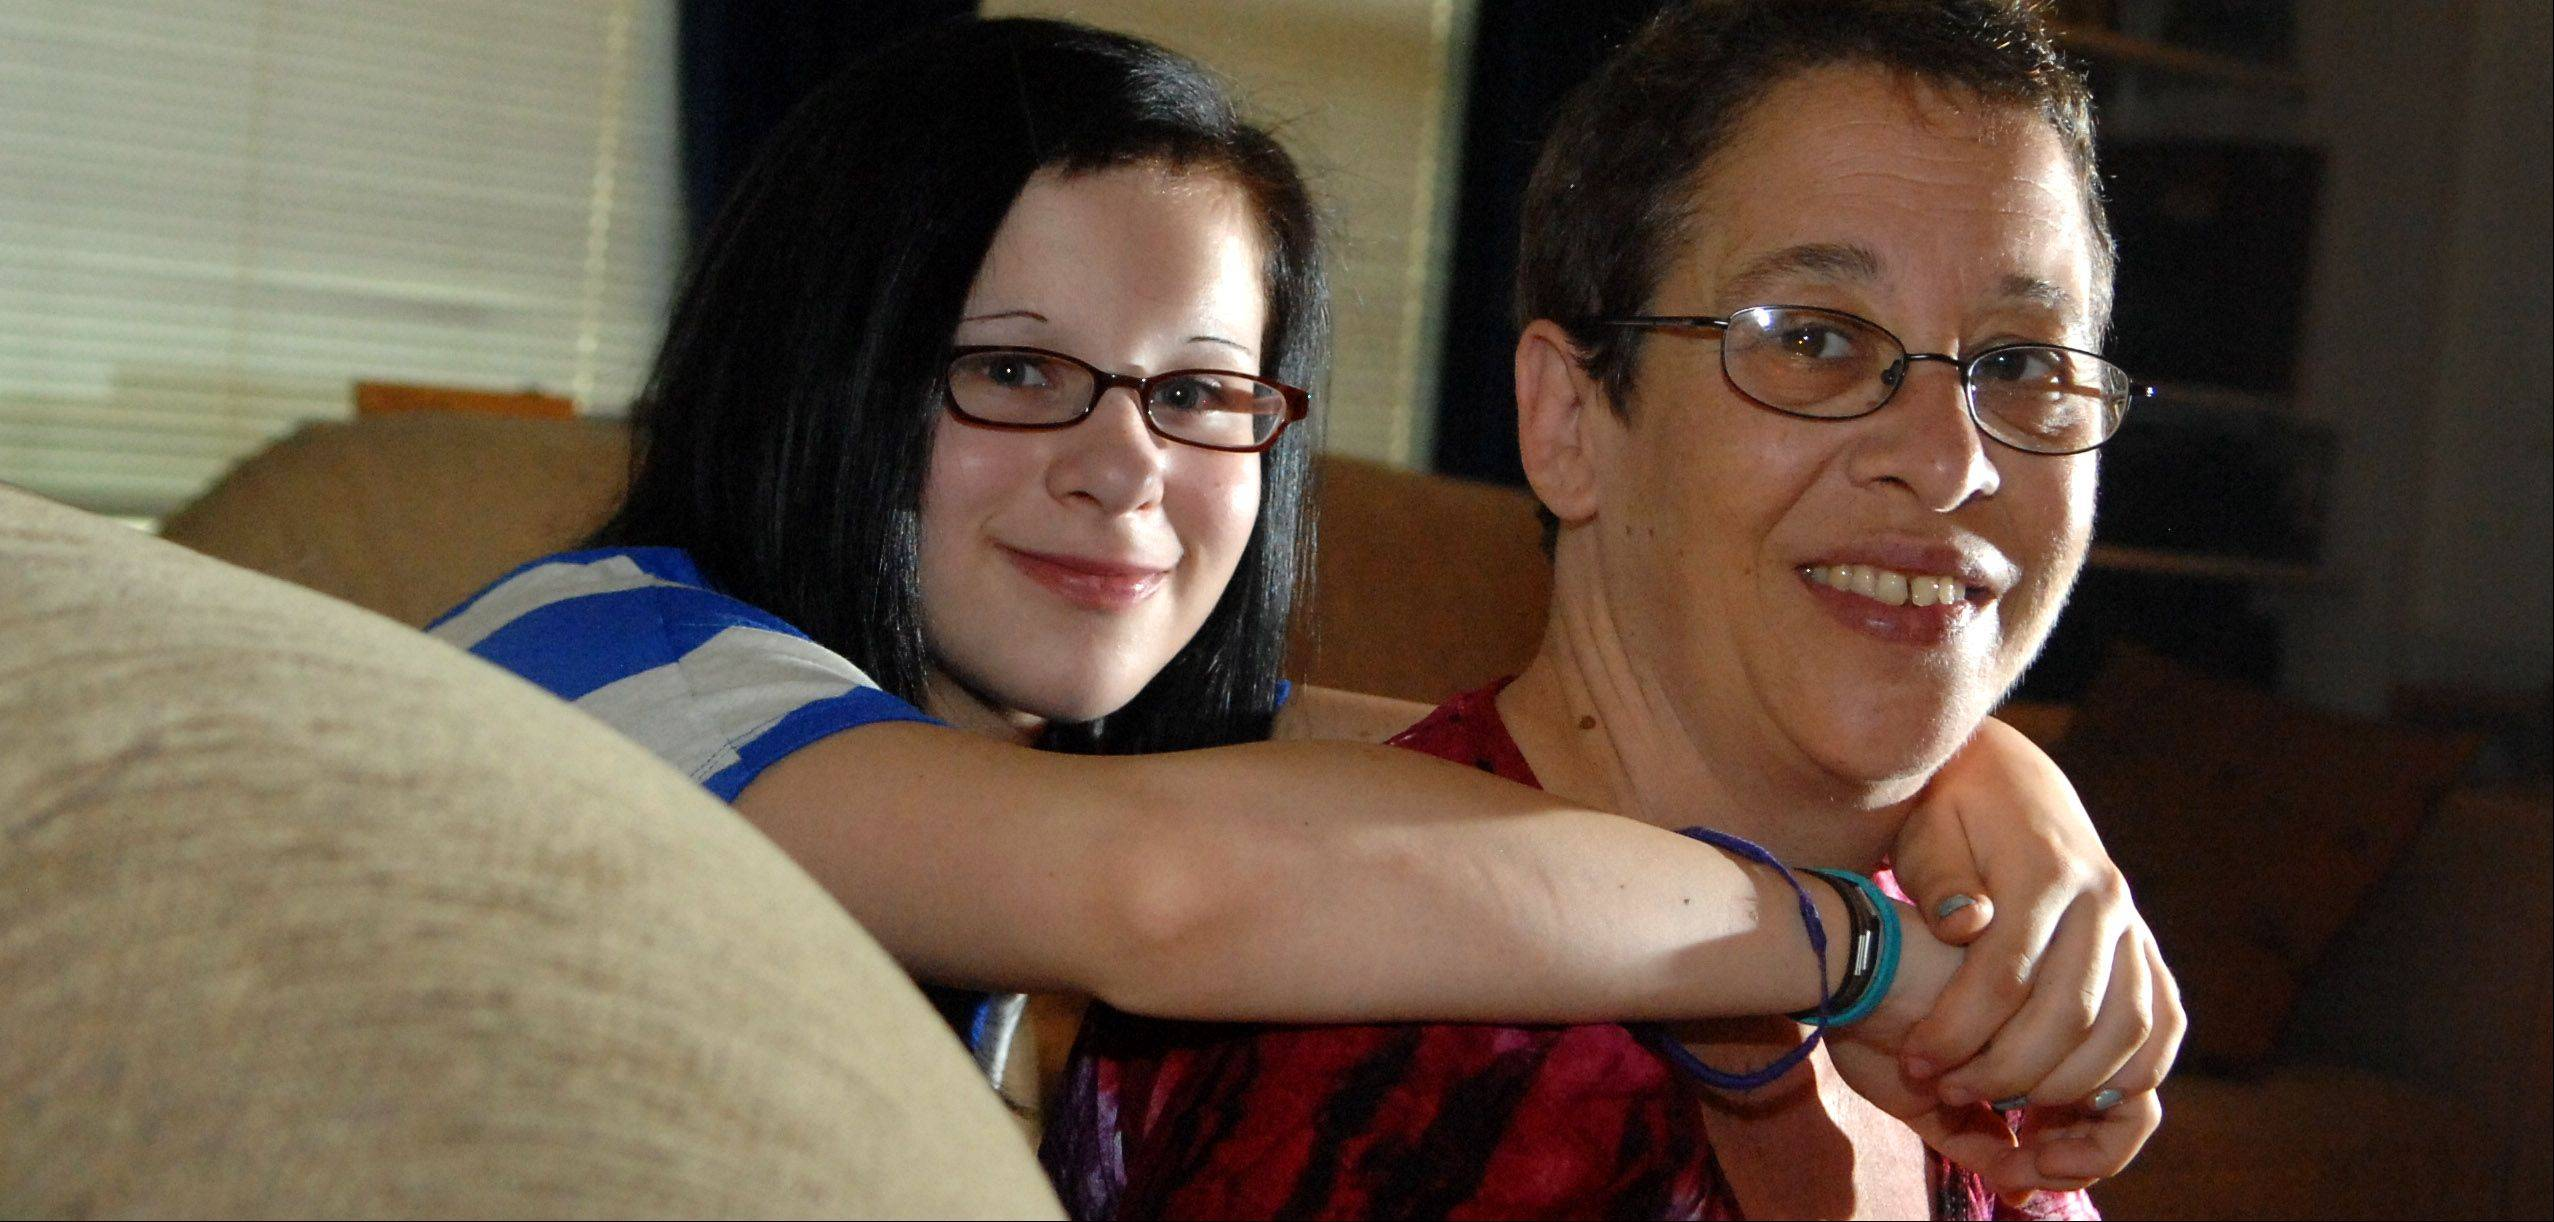 Mariah Reeves and her mom, Sandy, started the Illinois chapter of Stand for the Silent.